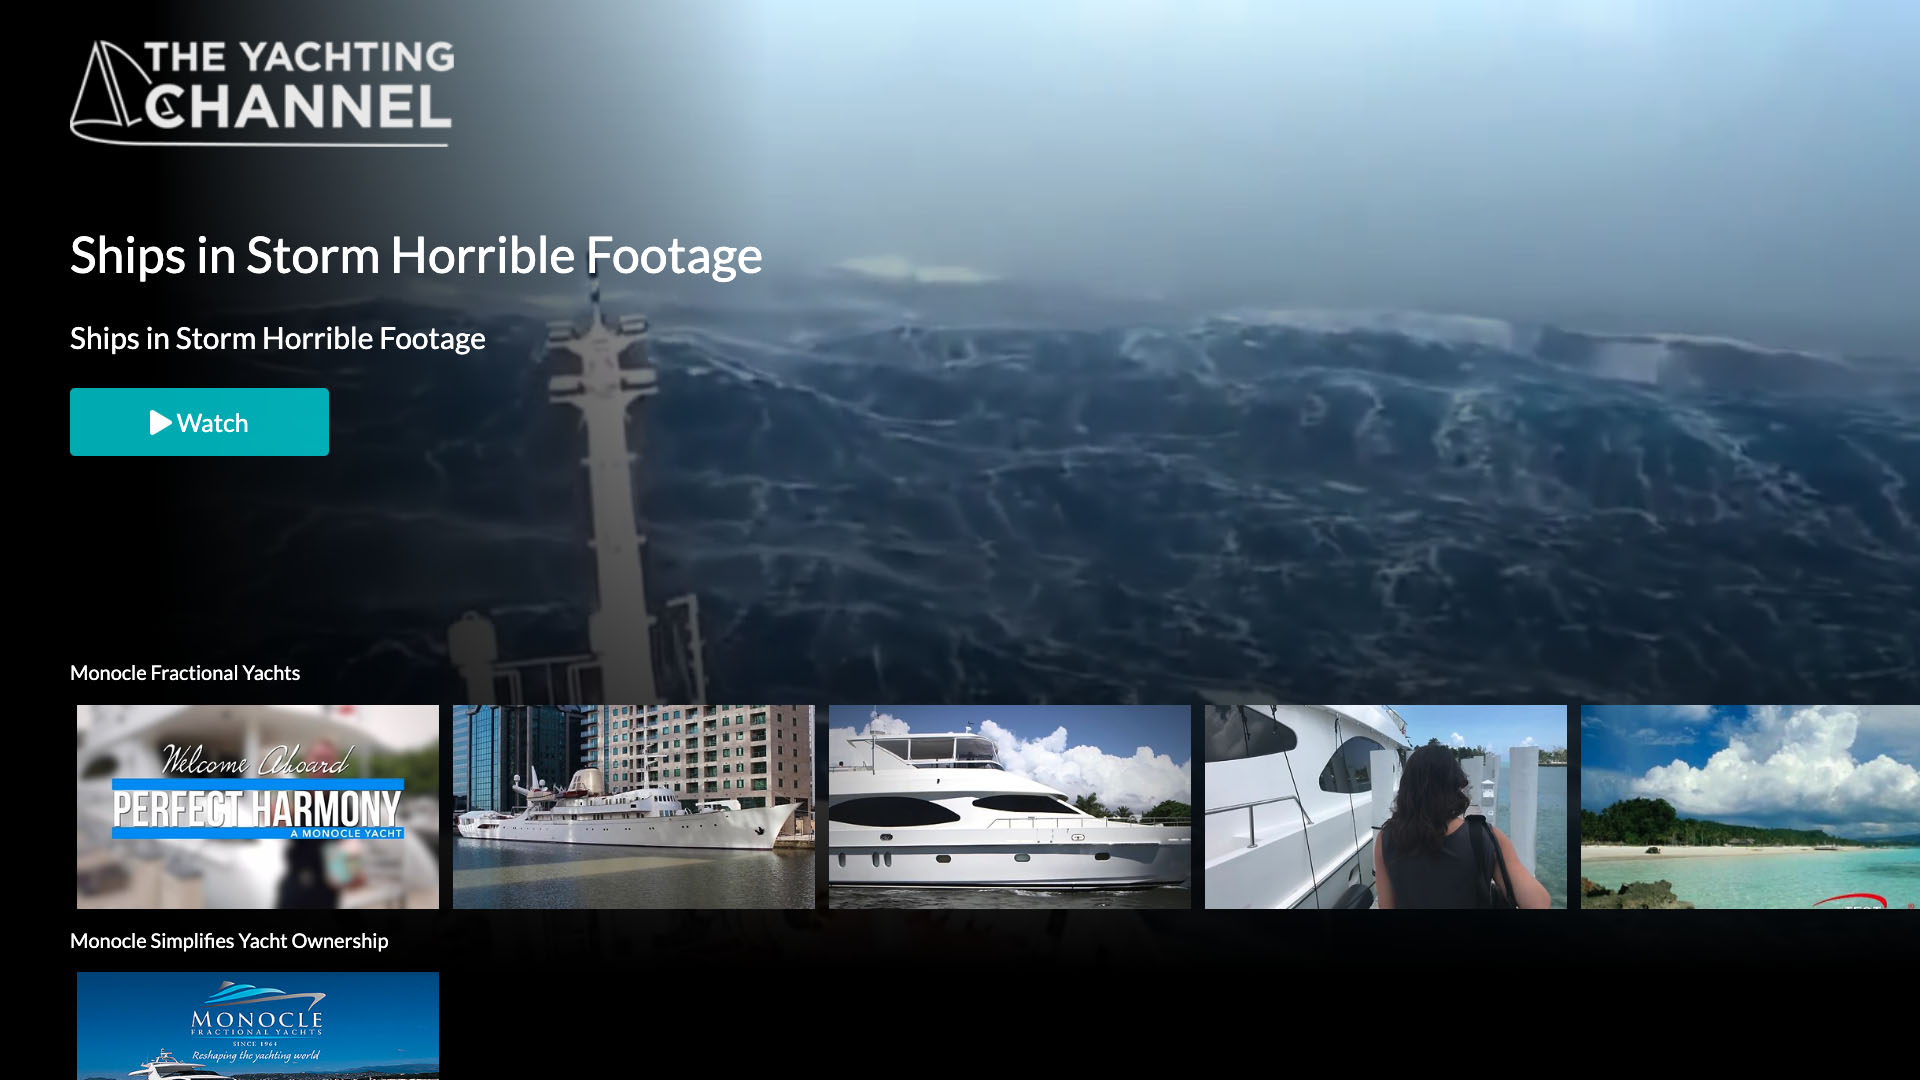 The Yachting Channel Screenshot 001